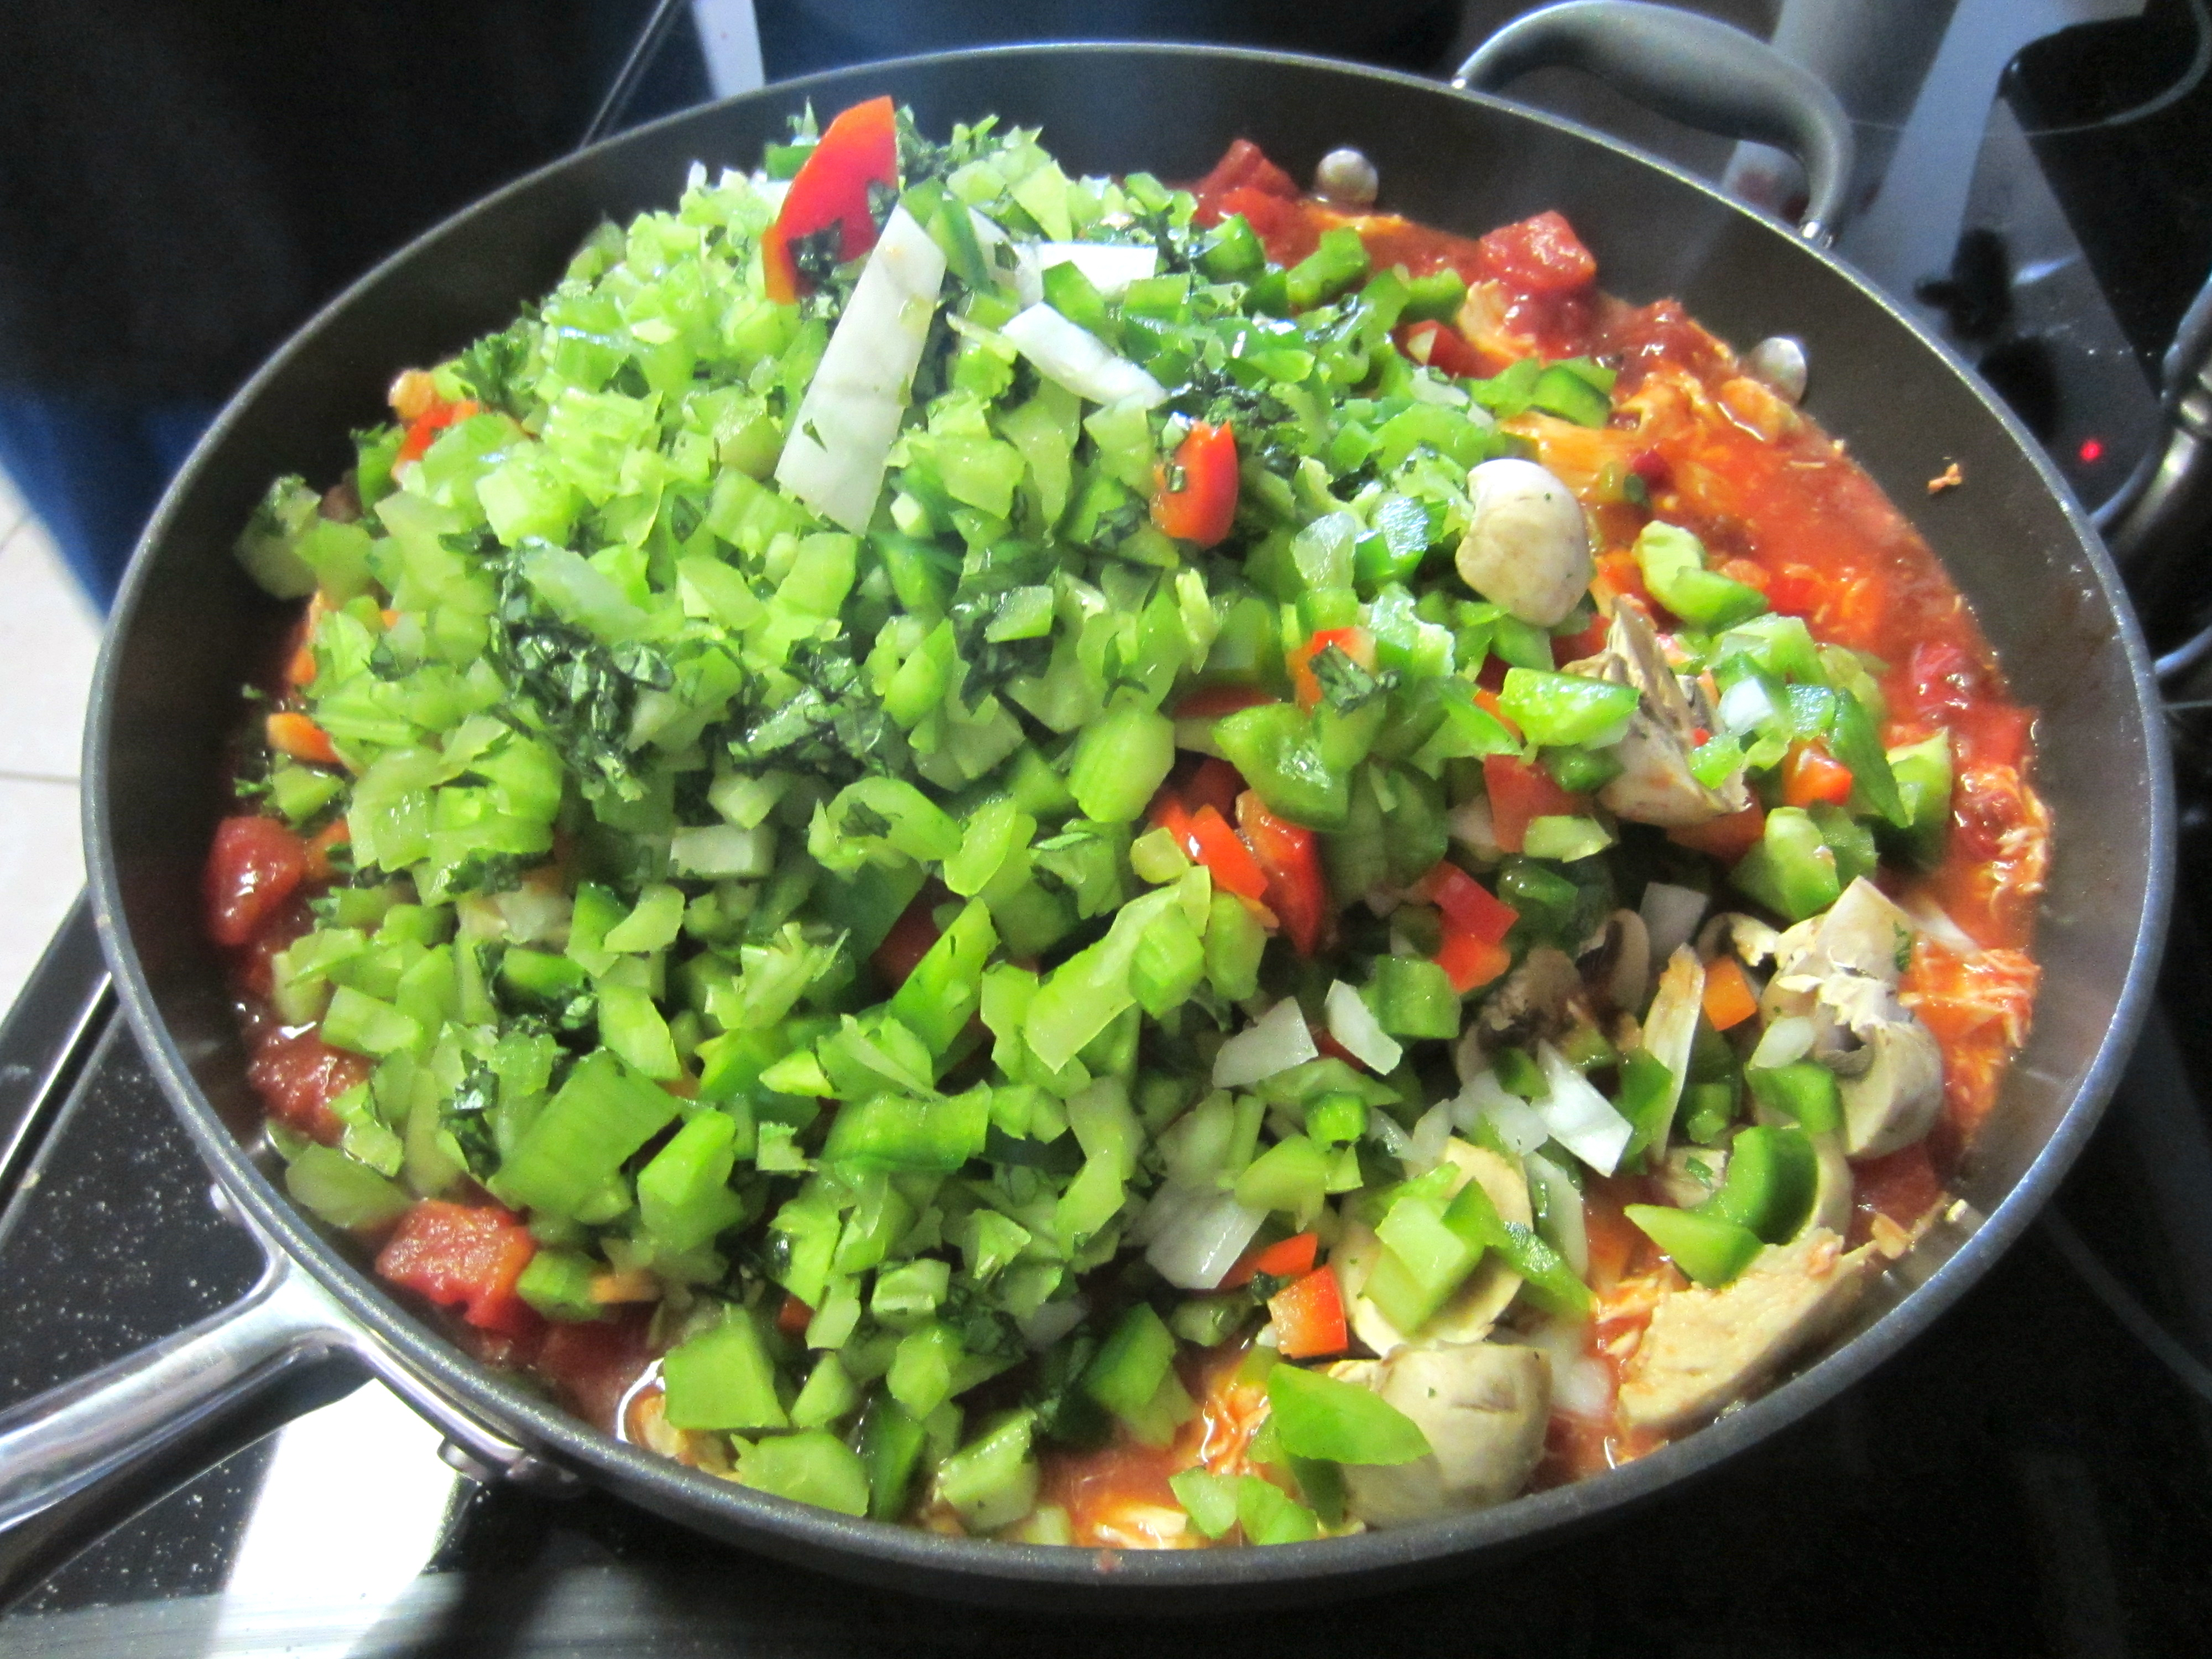 Add chopped veggies to meat and sauce